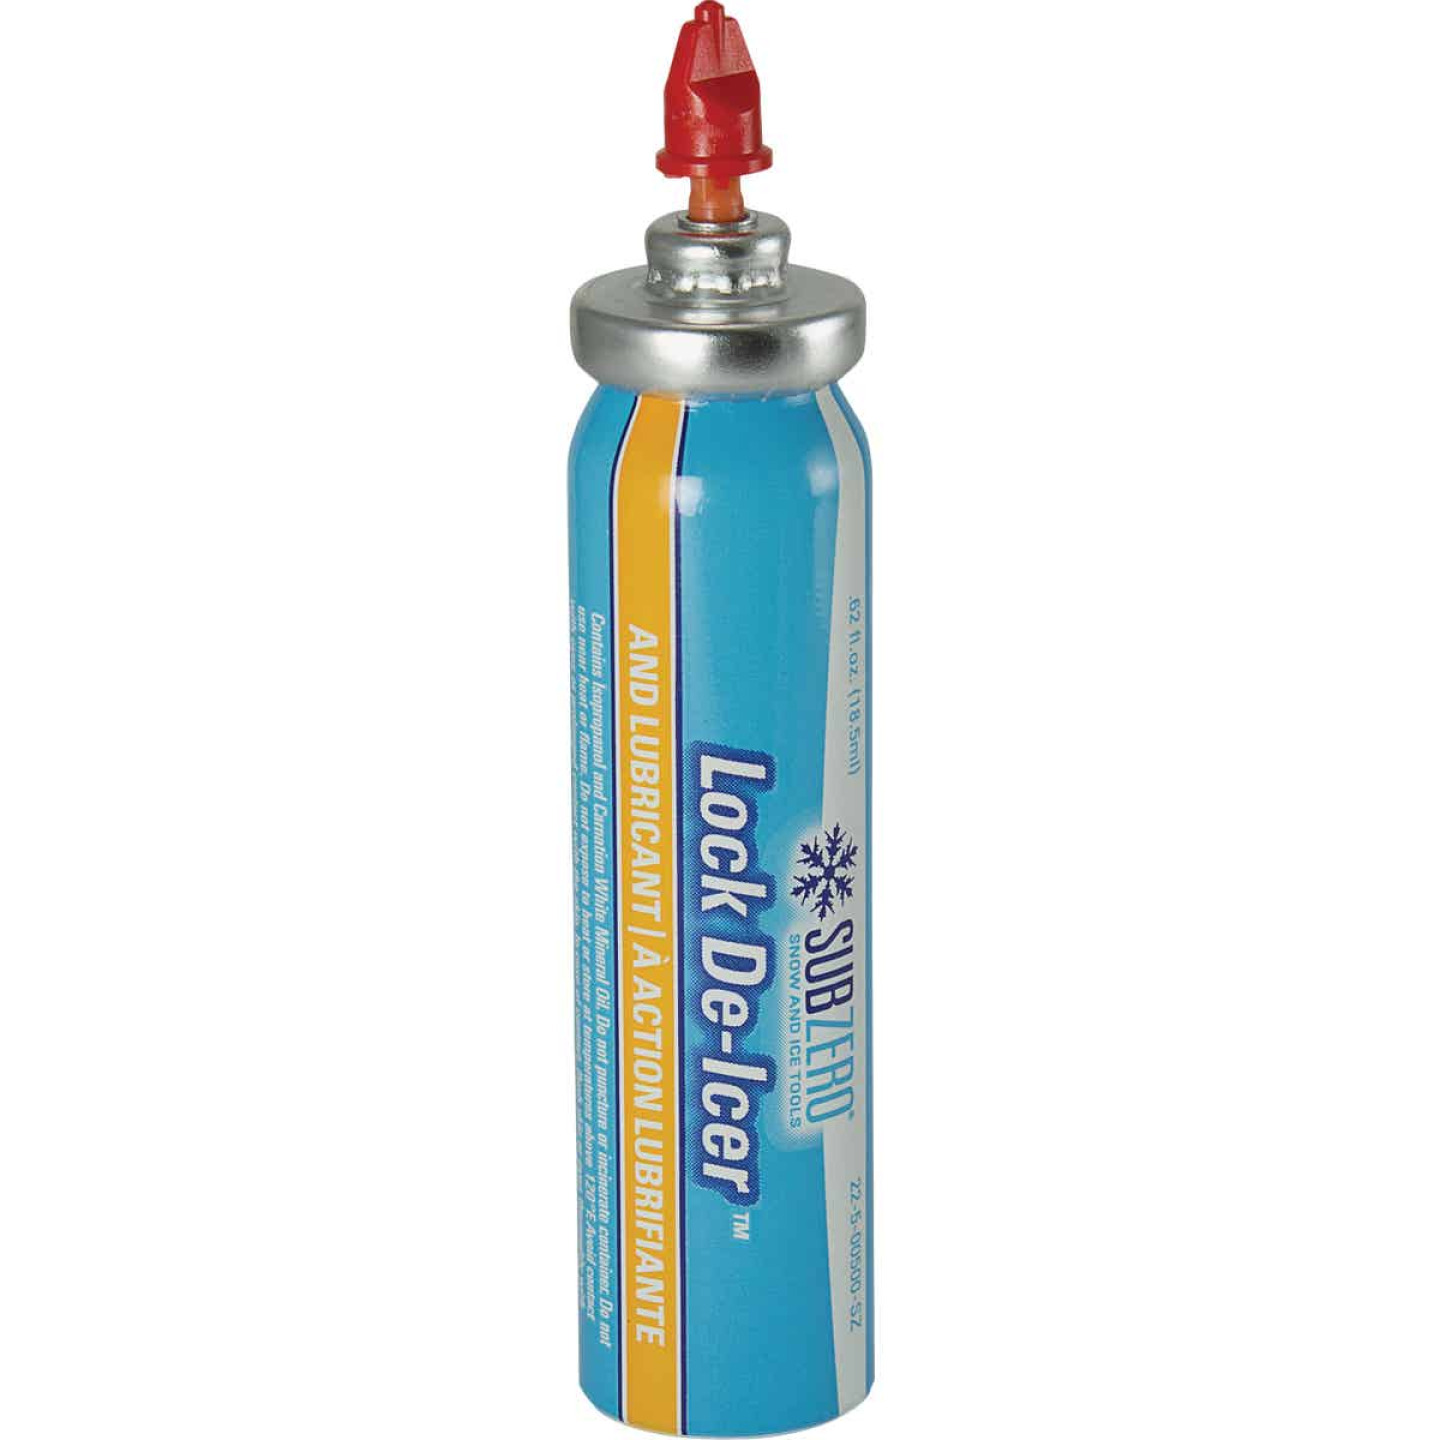 Subzero 5/8 Oz. Lock De-Icer and Lubricant Image 1